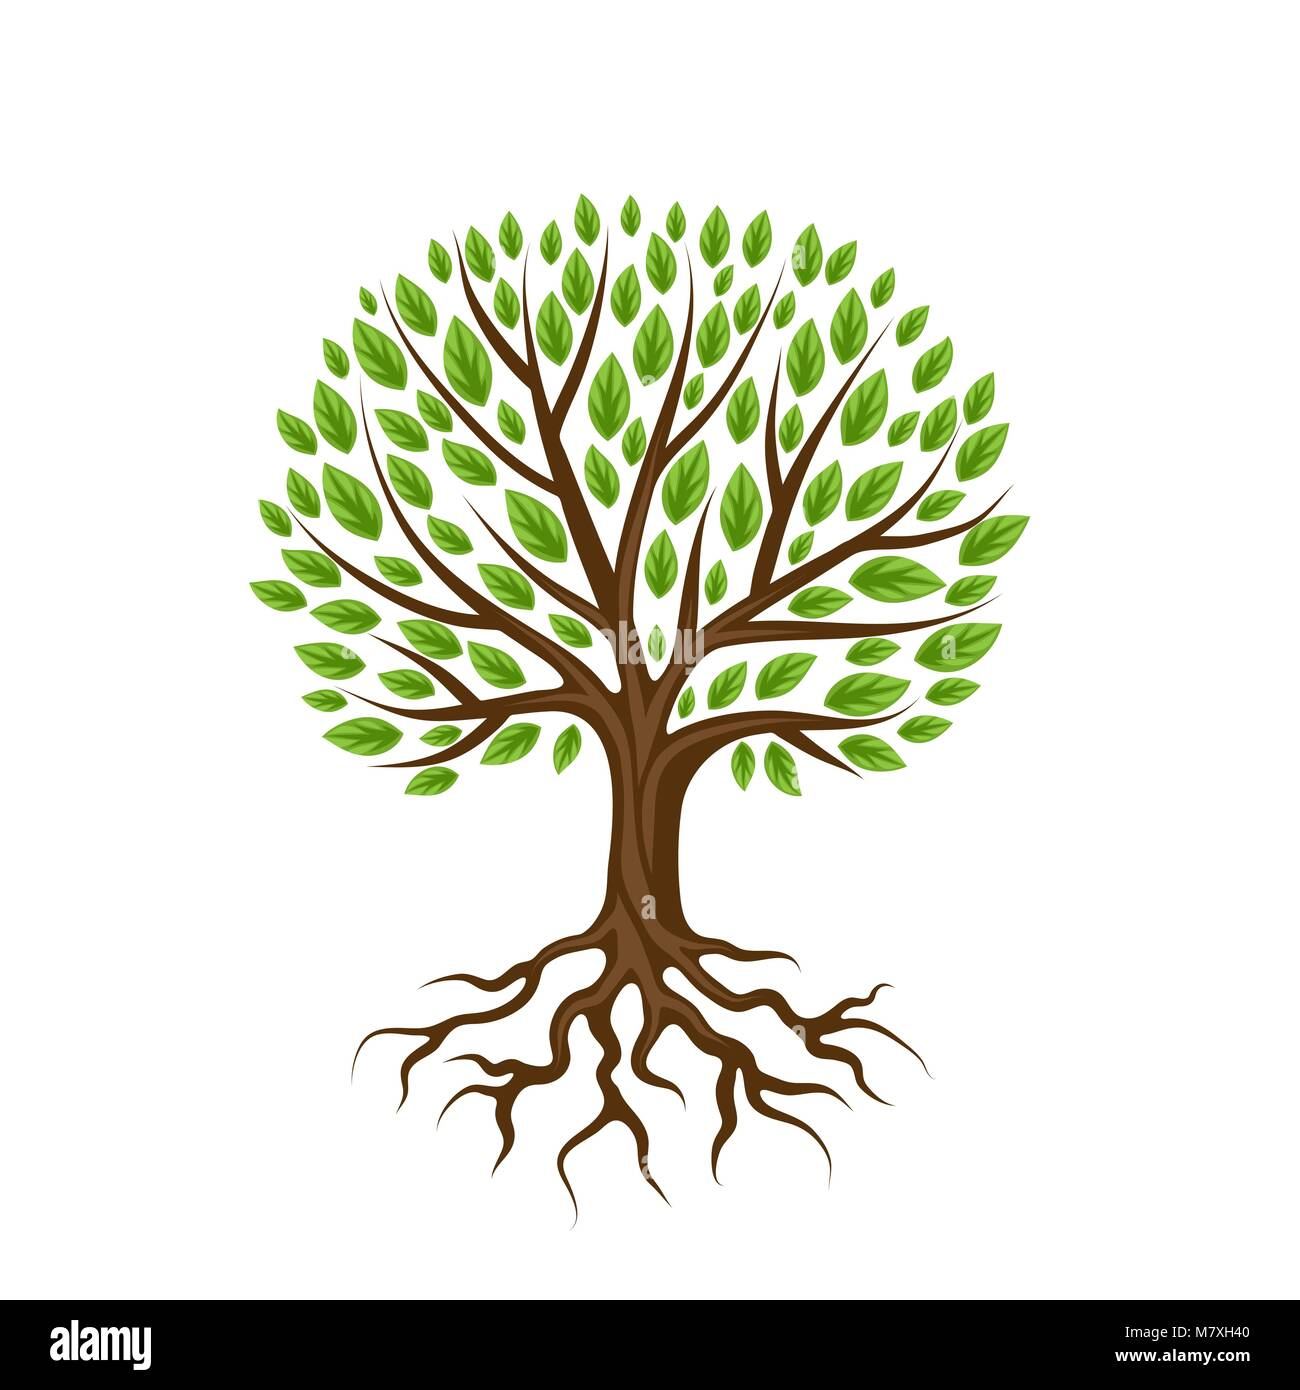 Tree Roots Background Ecology Vector Stock Photos & Tree Roots ...